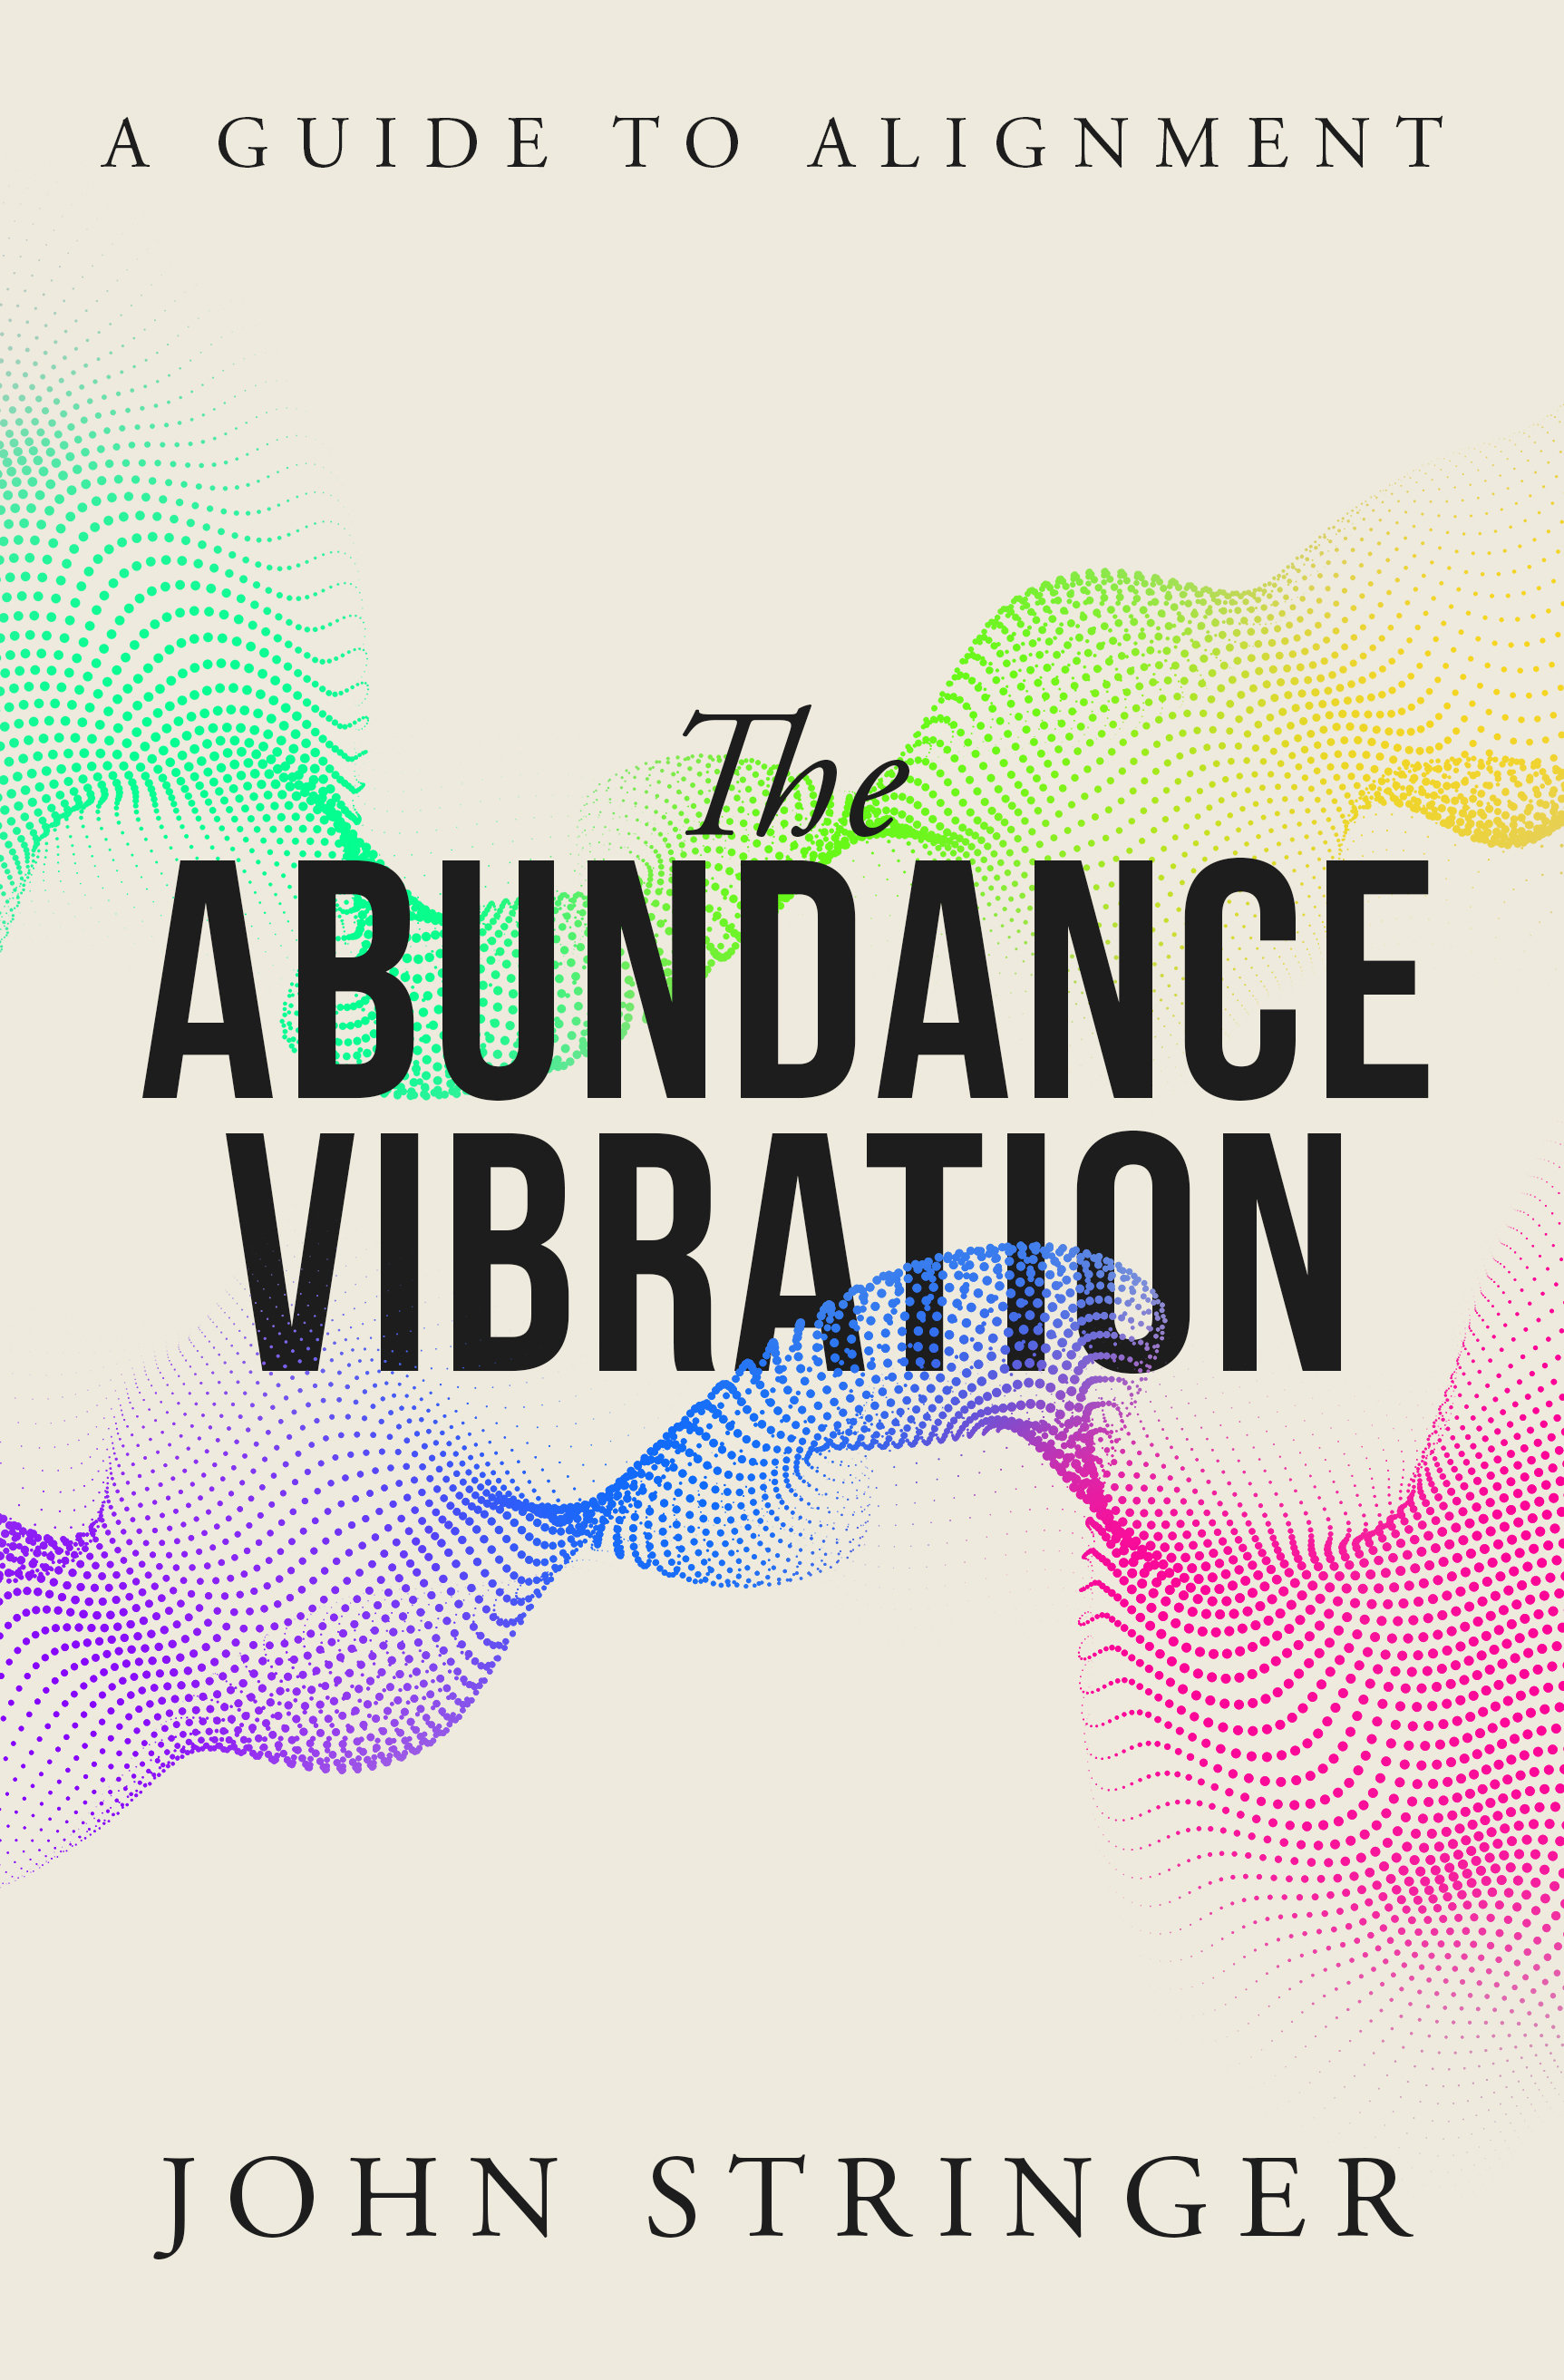 The Abundance Vibration: A Guide to Alignment (digital book) TAV-1111